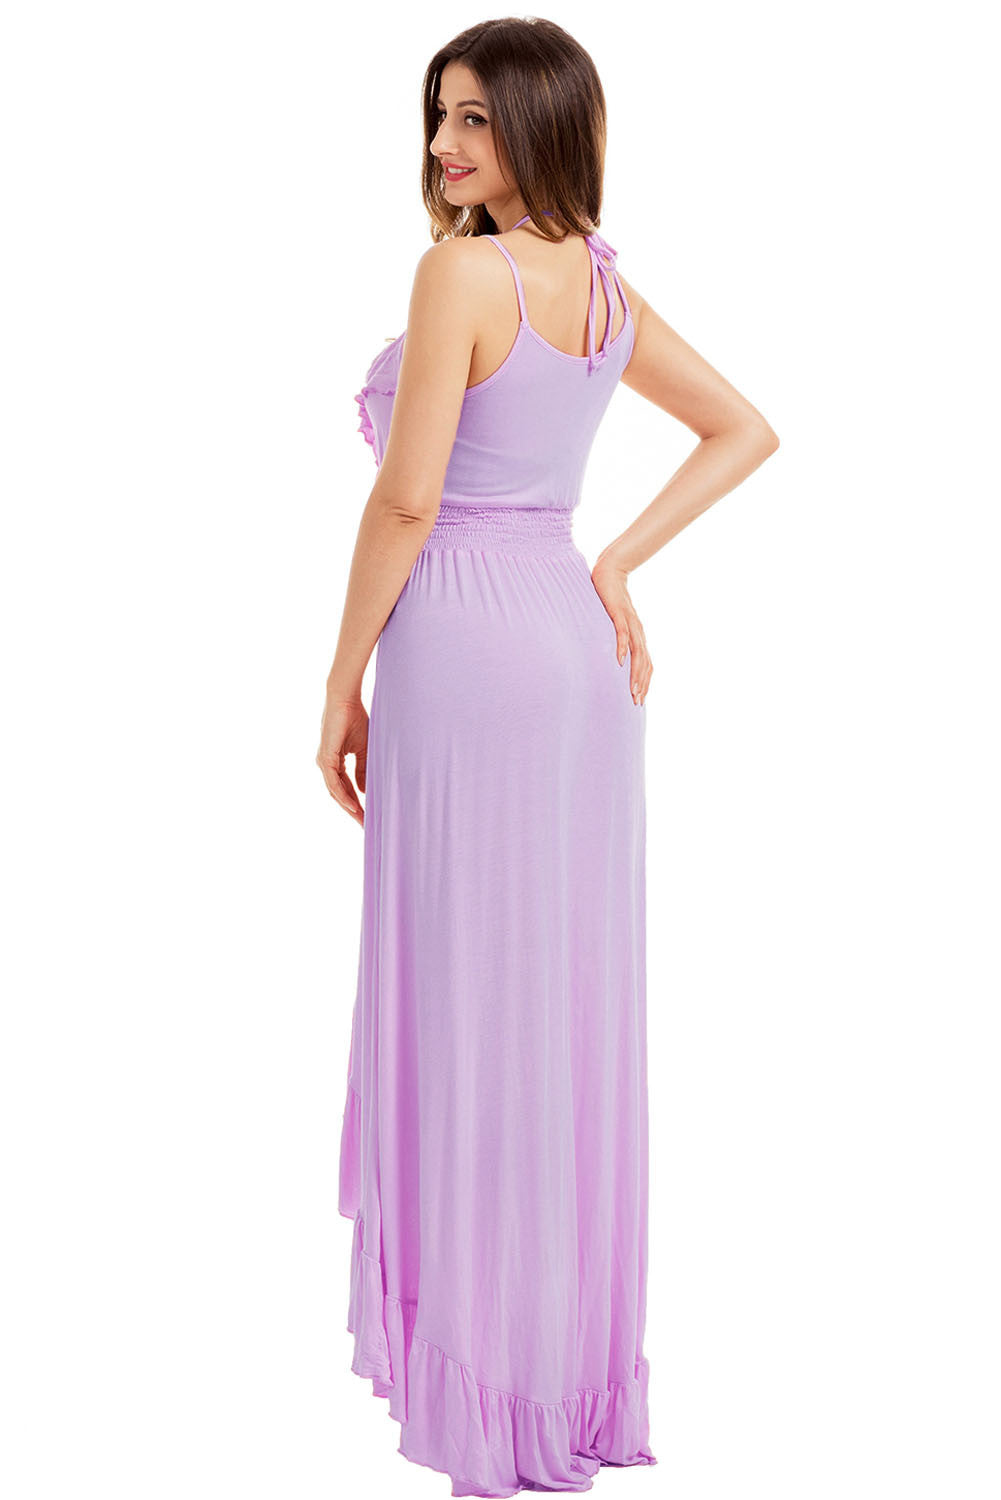 Lilac Lace Up V Neck Ruffle Trim Hi-Low Maxi Dress LAVELIQ